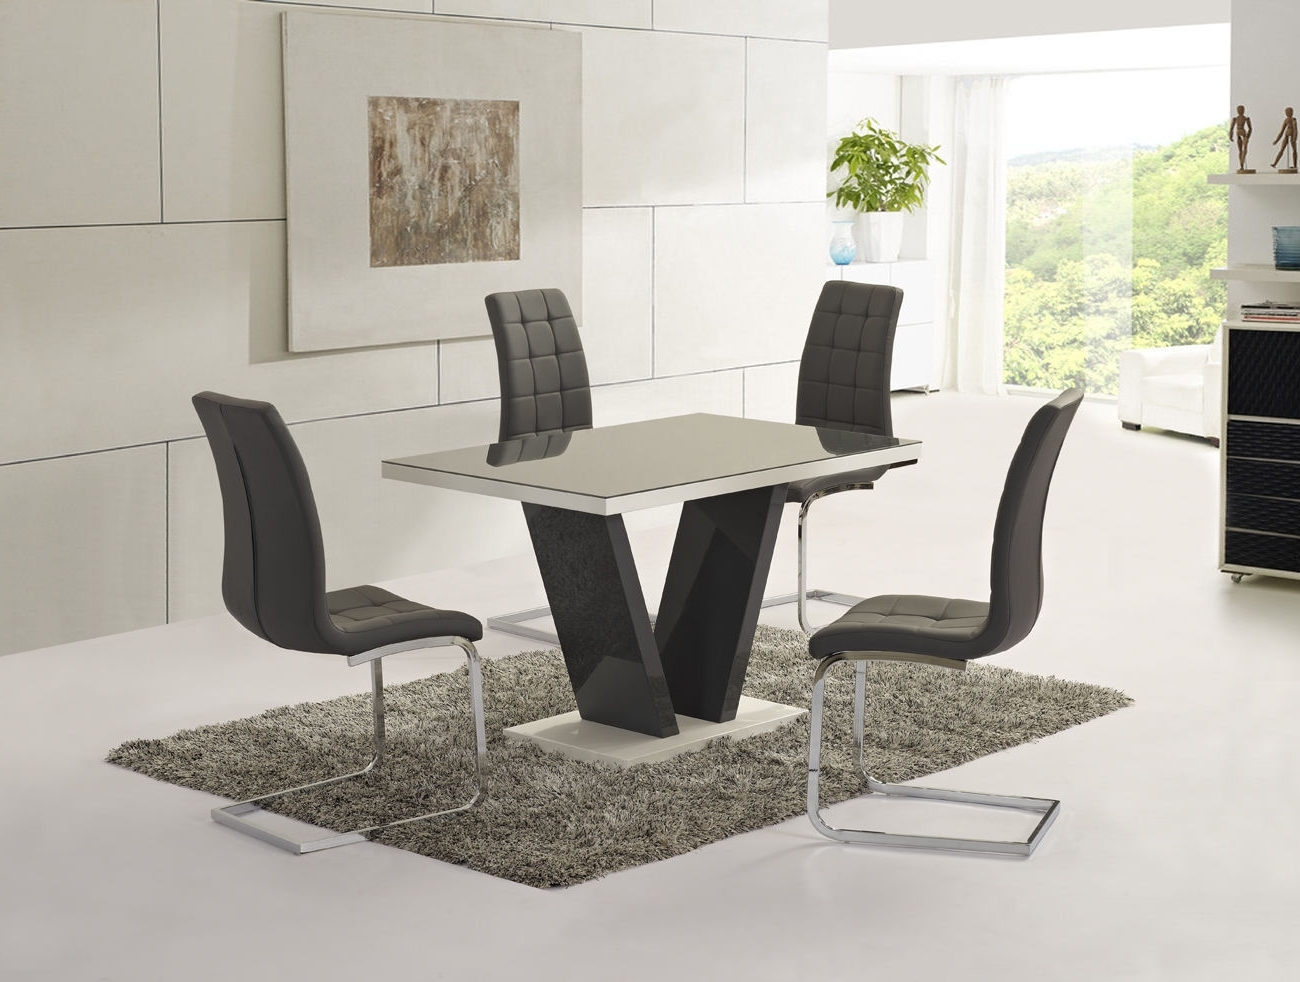 Ga Vico Gloss Grey Glass Top Designer 160Cm Dining Set – 4 6 Grey In Trendy Gloss Dining Sets (View 7 of 25)